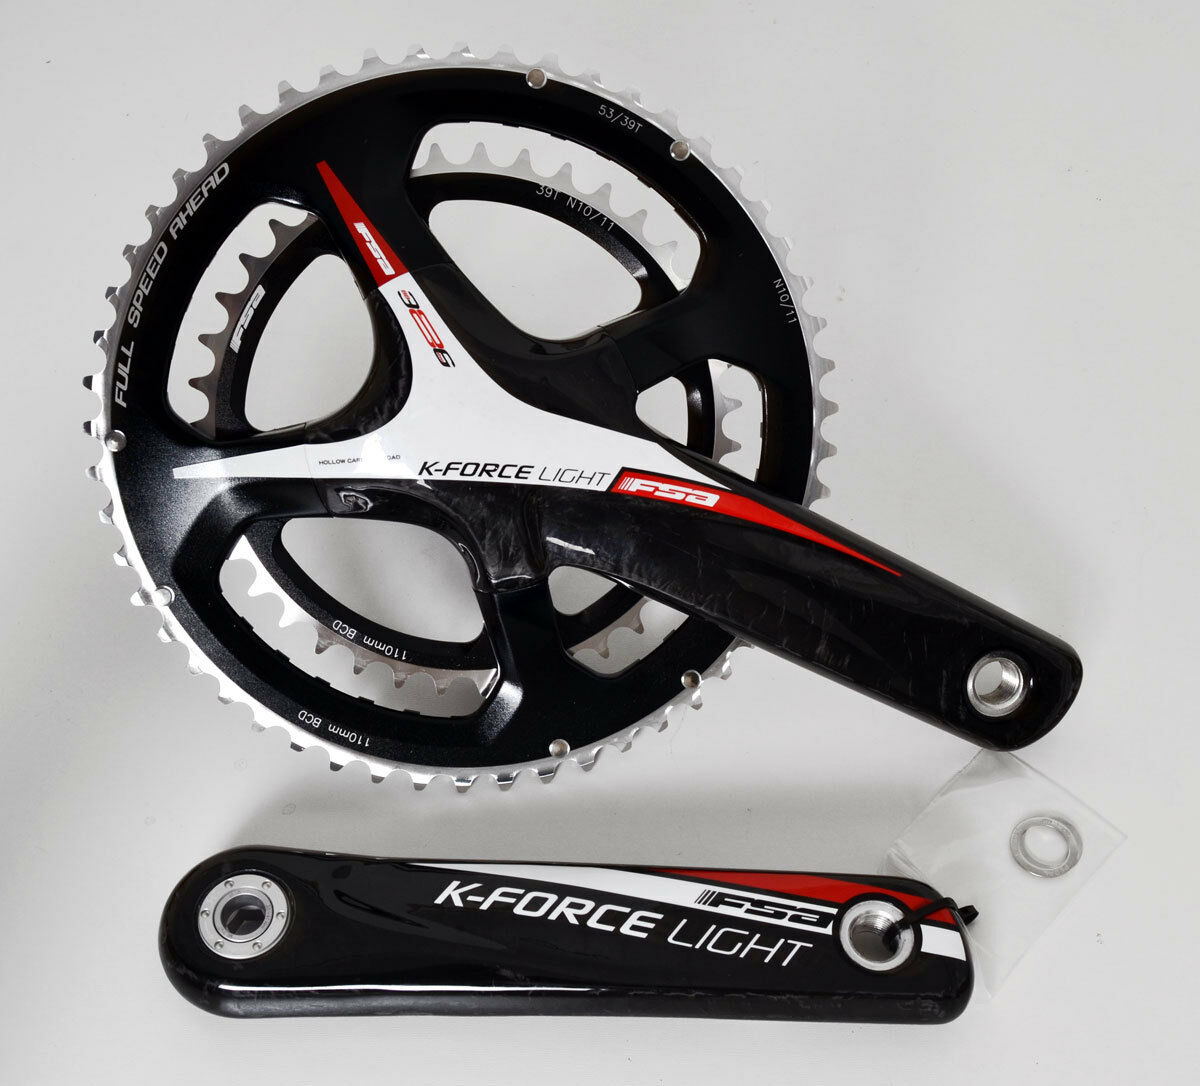 FSA KFORCE LIGHT autoBON CRANK SET CRANKSET 170 5339 11SPEED 386 EVO BB386 rosso